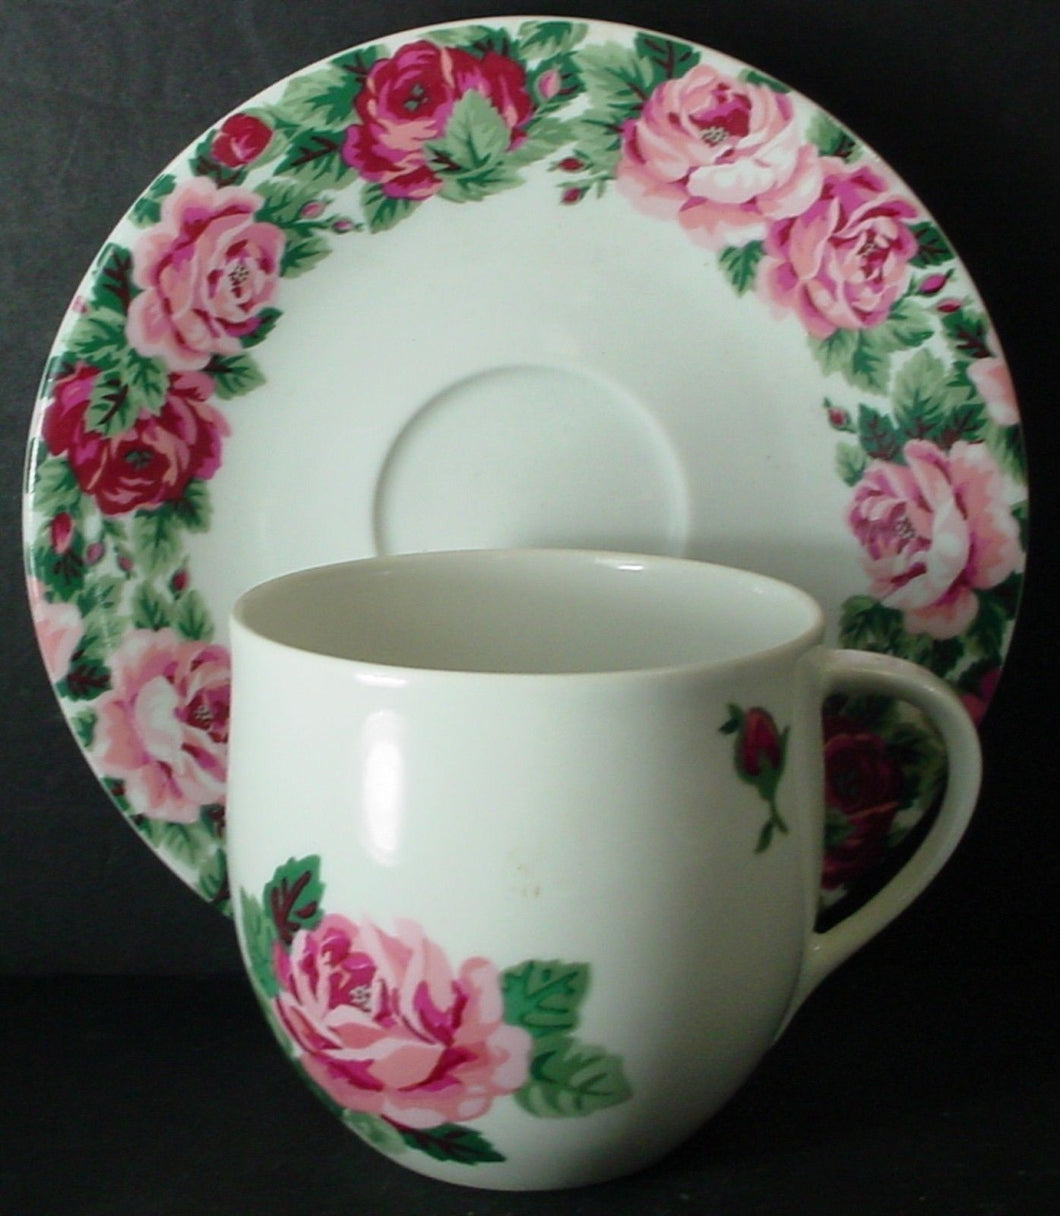 BLOCK china ROSE GARDEN pattern CUP & SAUCER Set Cup 3-1/8